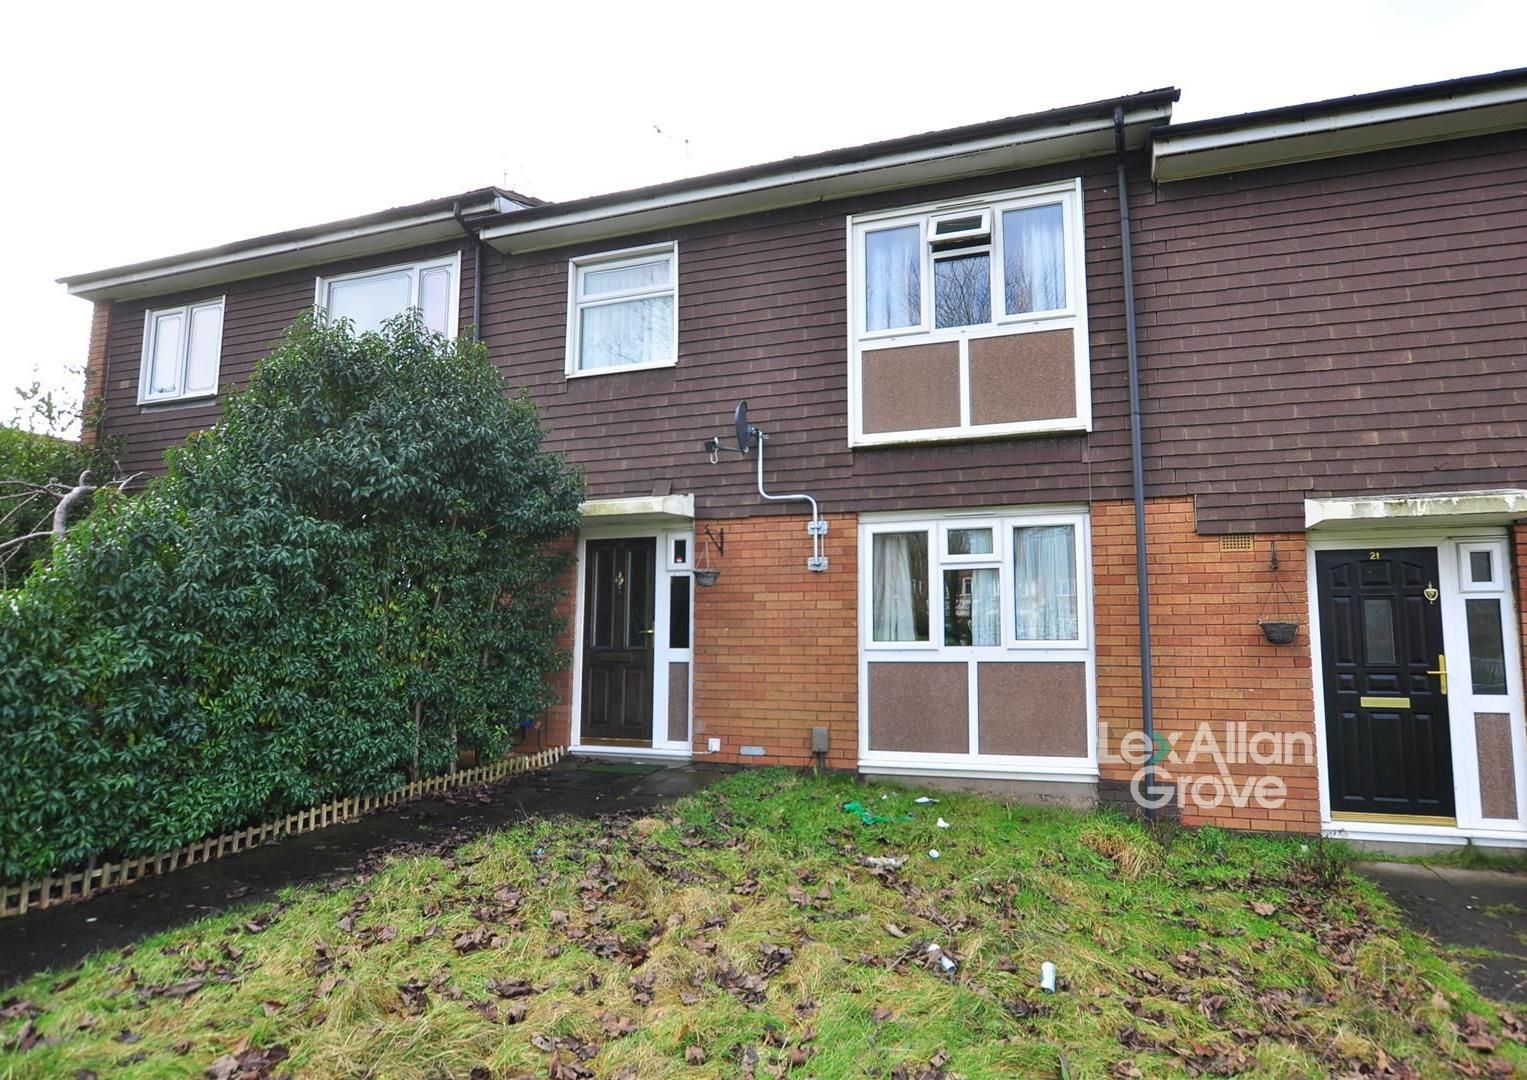 3 bed house for sale, B64